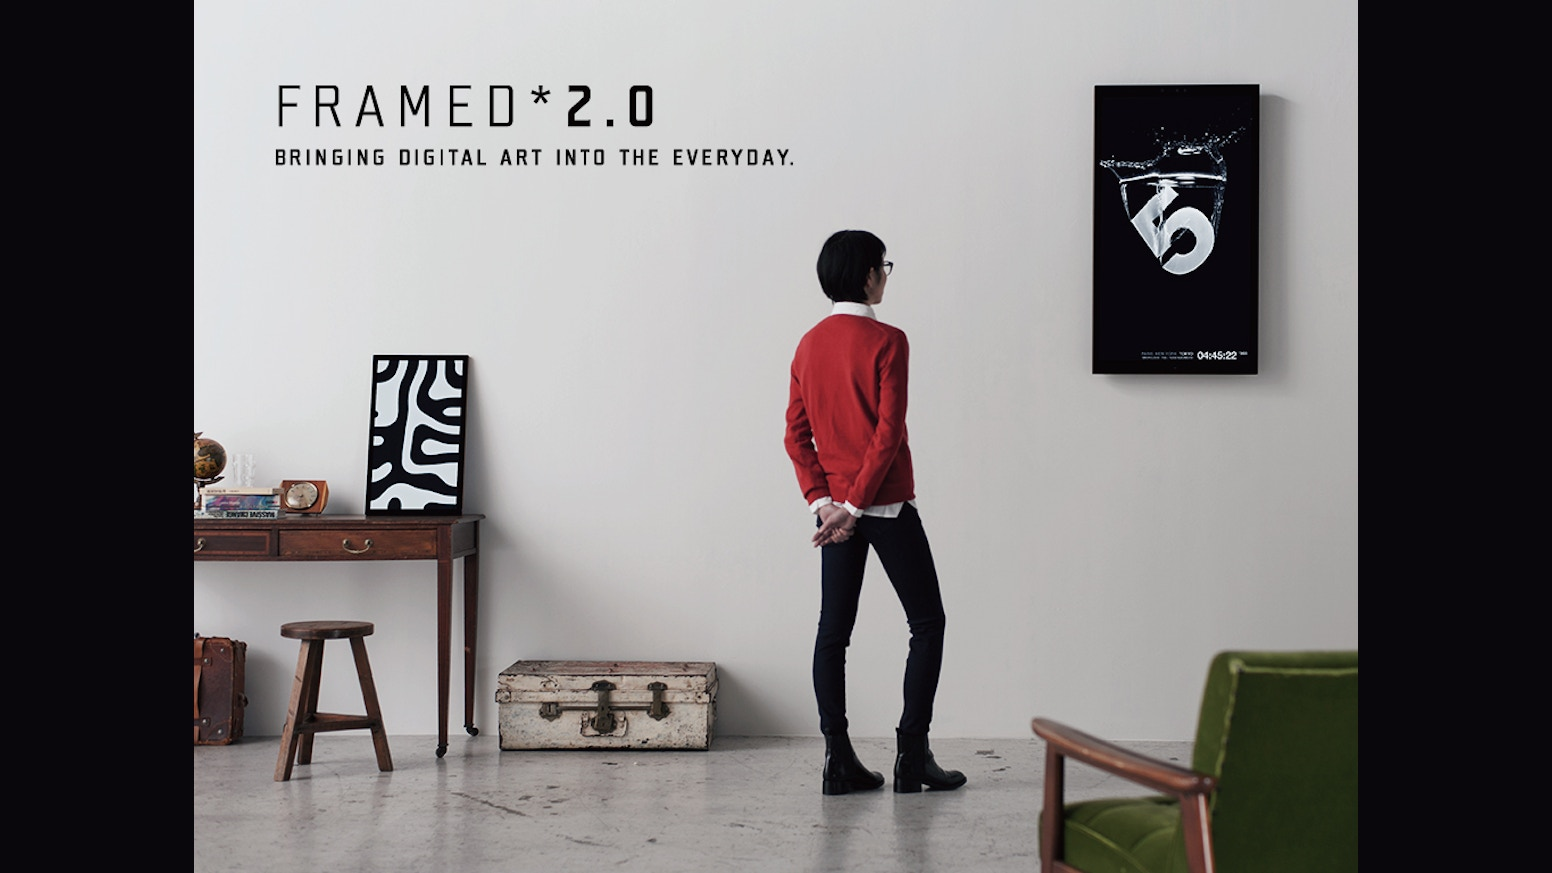 framed allows you to showcase an infinite selection of digital artworks in everyday environments